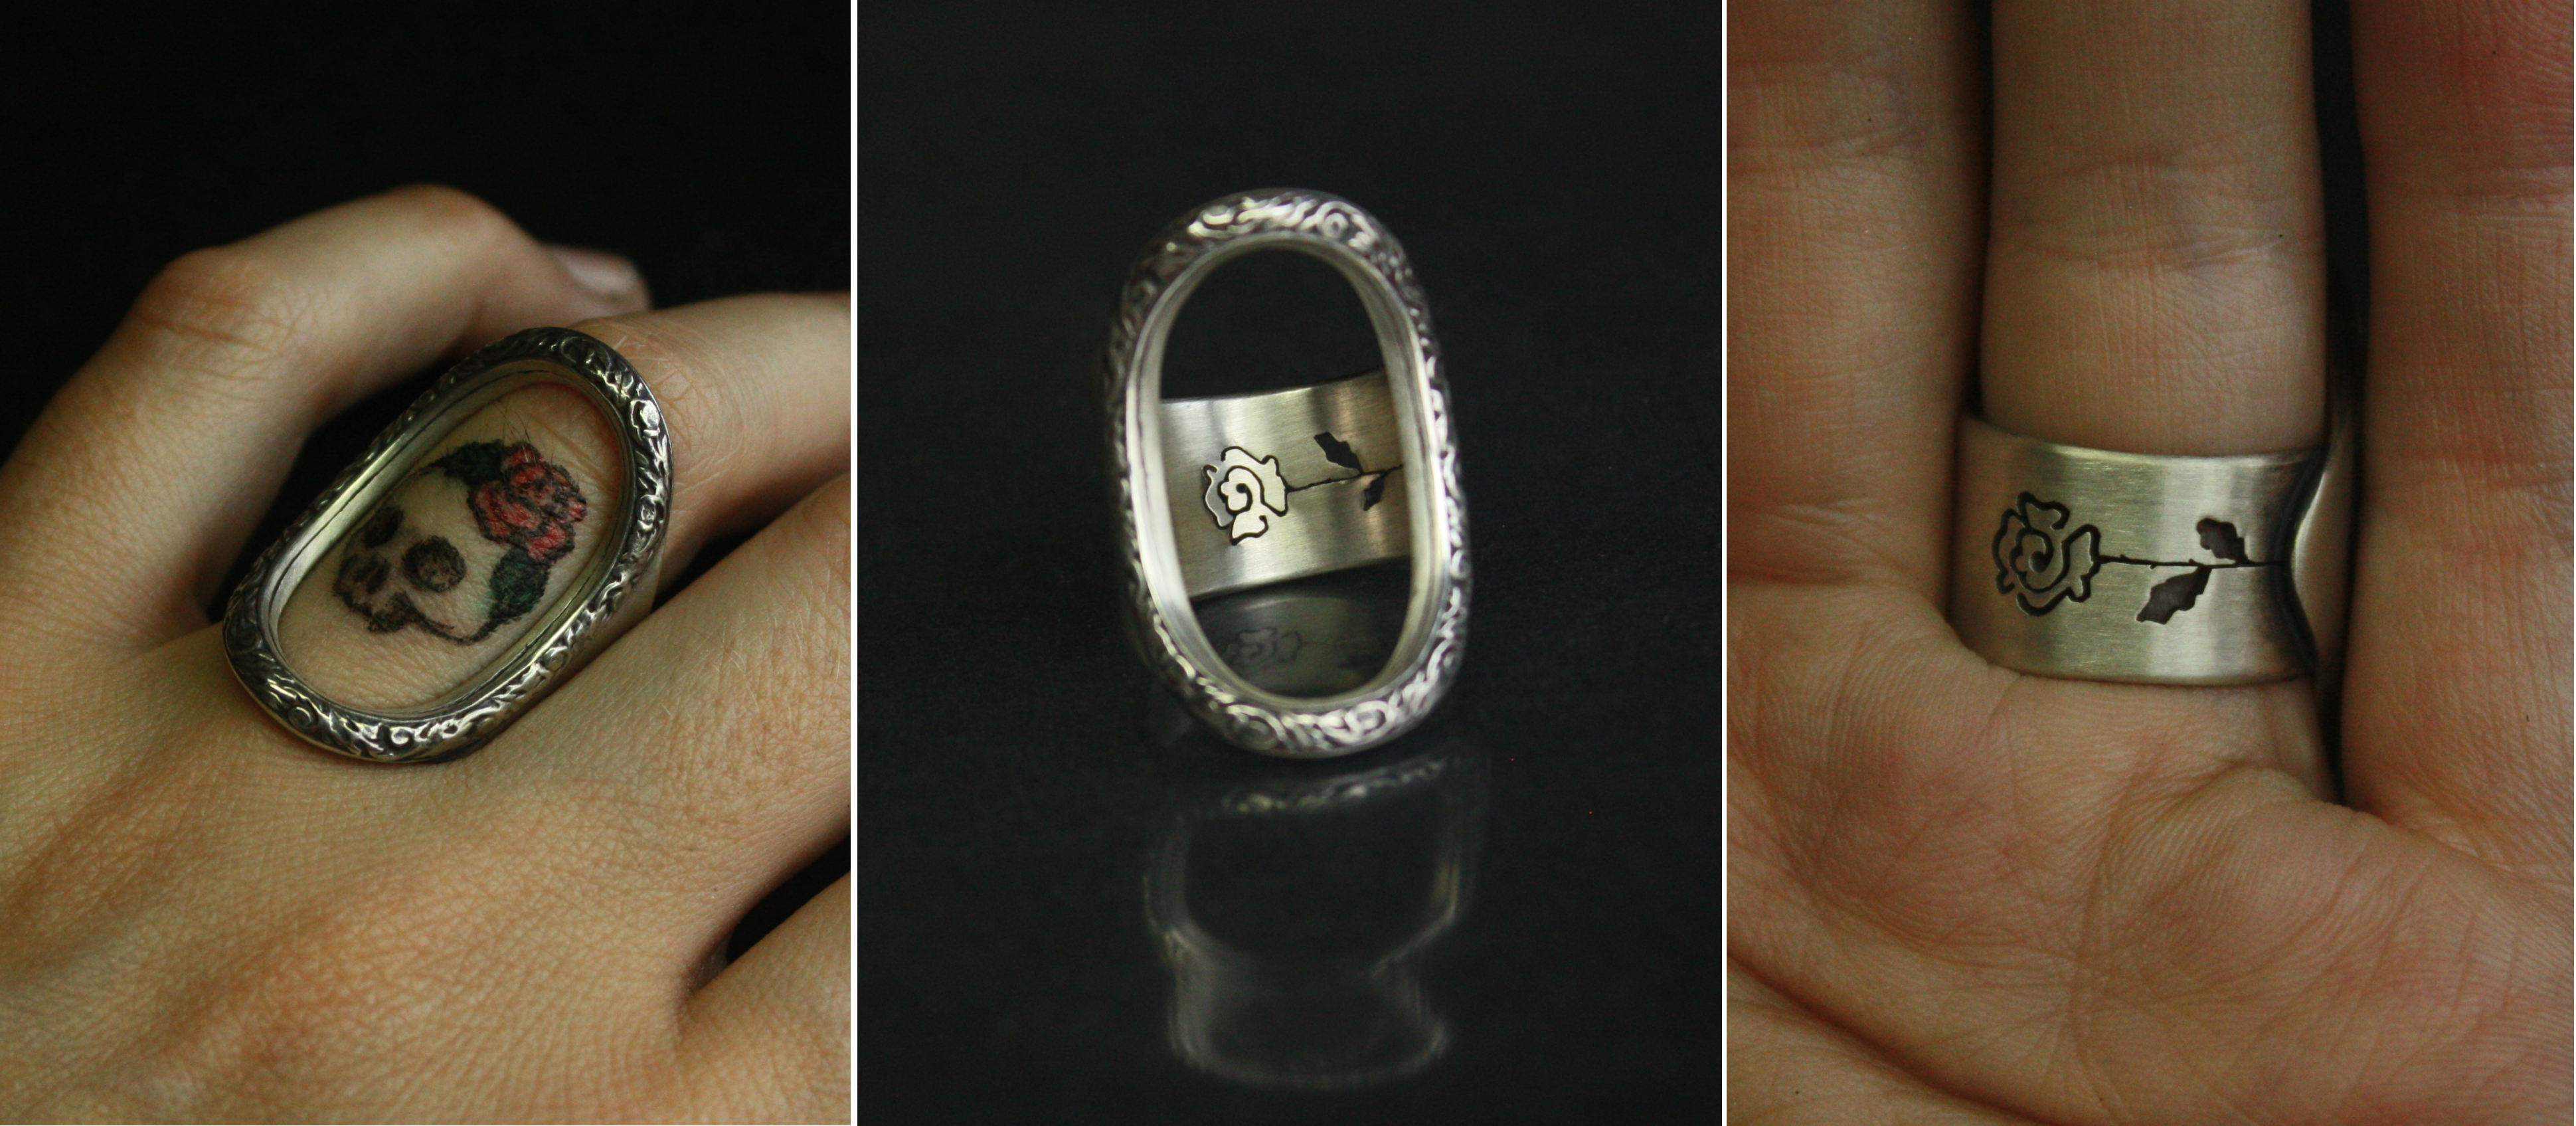 oval frame tattoo design victorian style oval frame ring for finger tattoo with custom personalized silhouette cut out details on the back of ring that matching your tattoo jewelry design put ring it